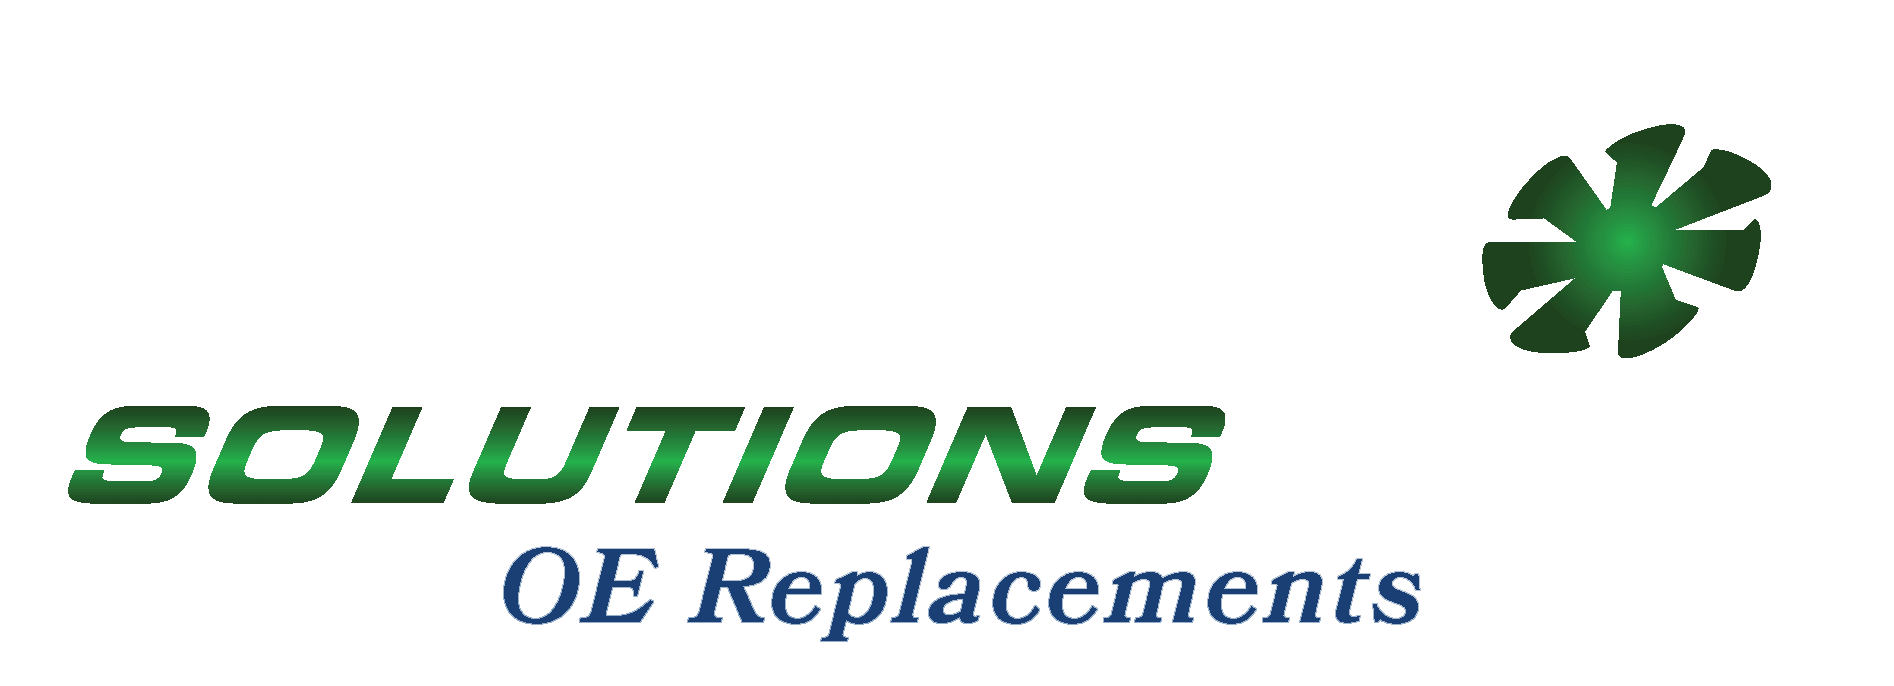 Turbo Solutions OR Replacements